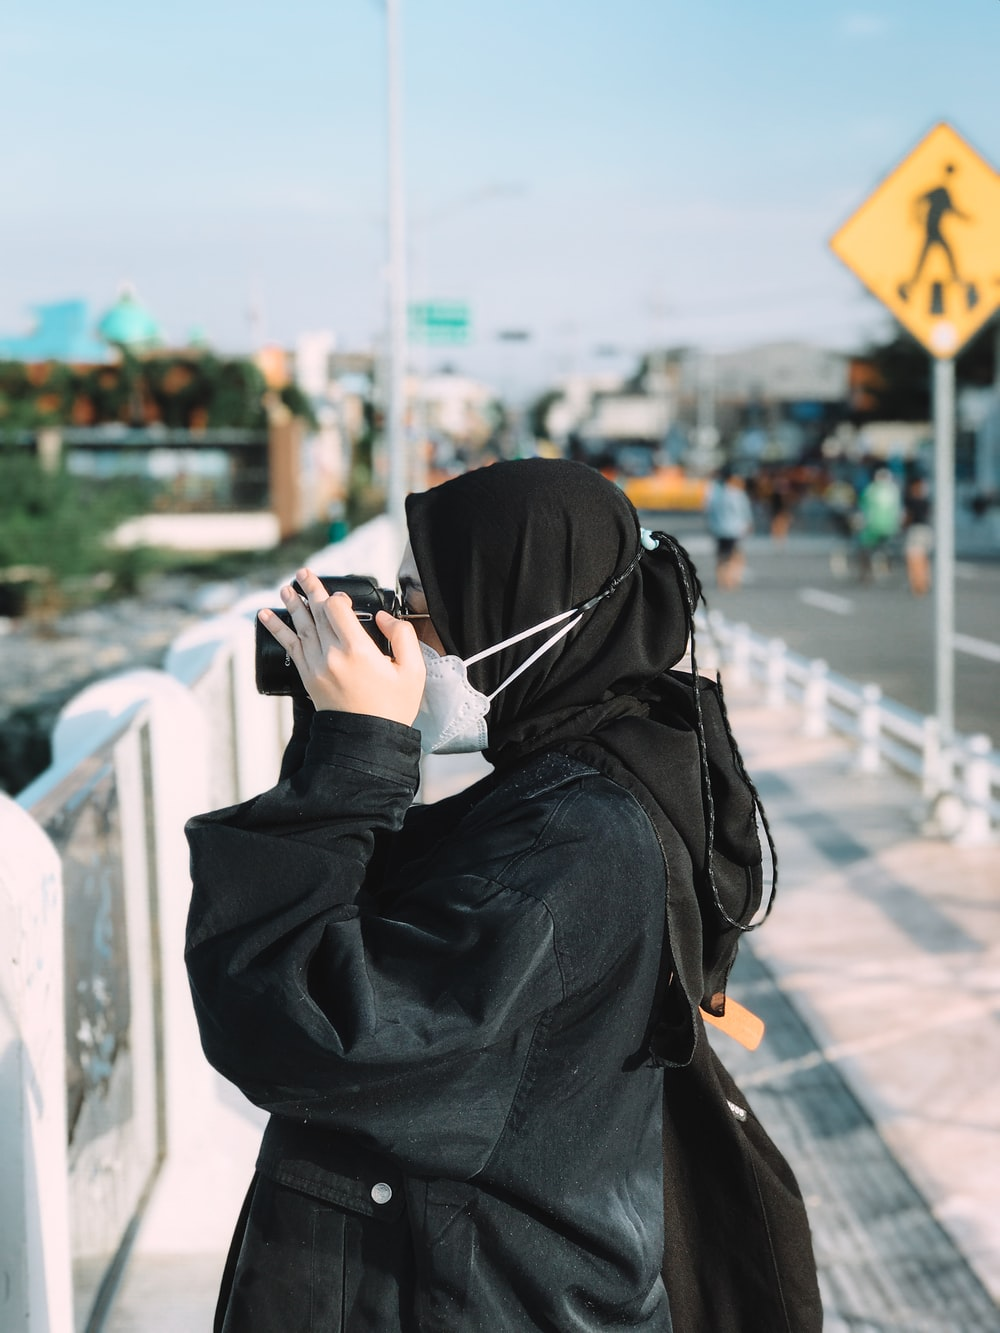 person in black hoodie using smartphone during daytime